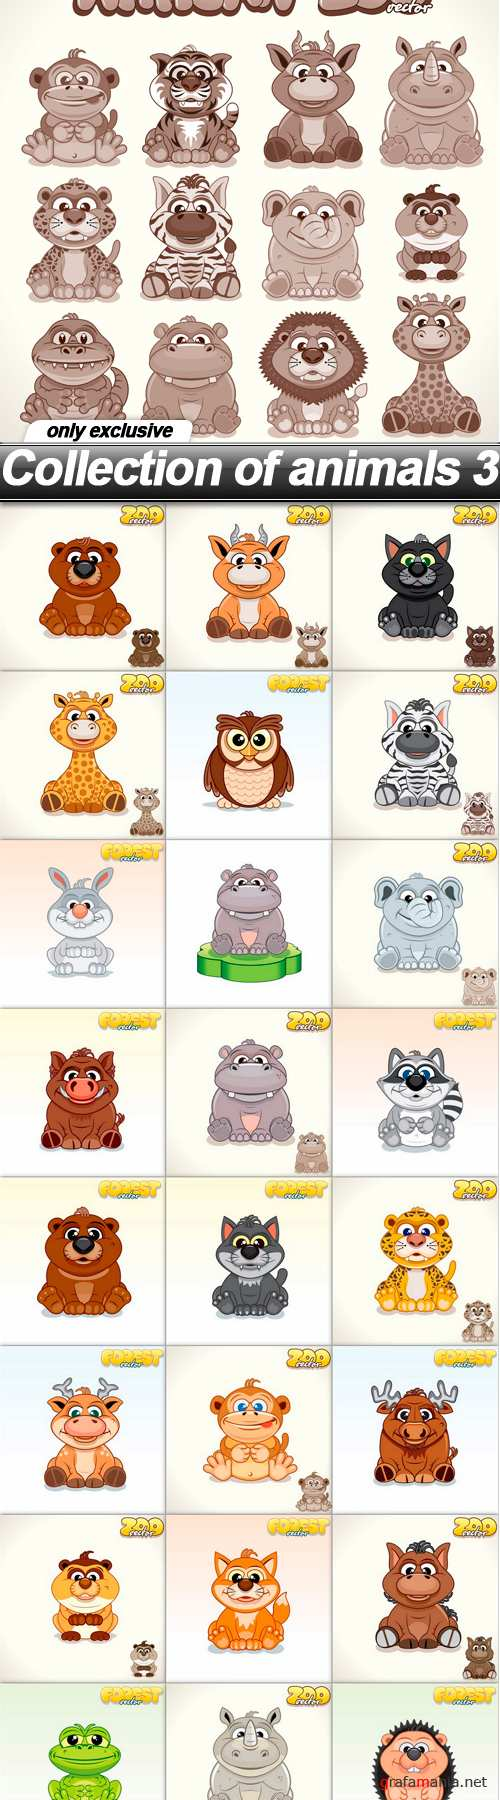 Collection of animals 3